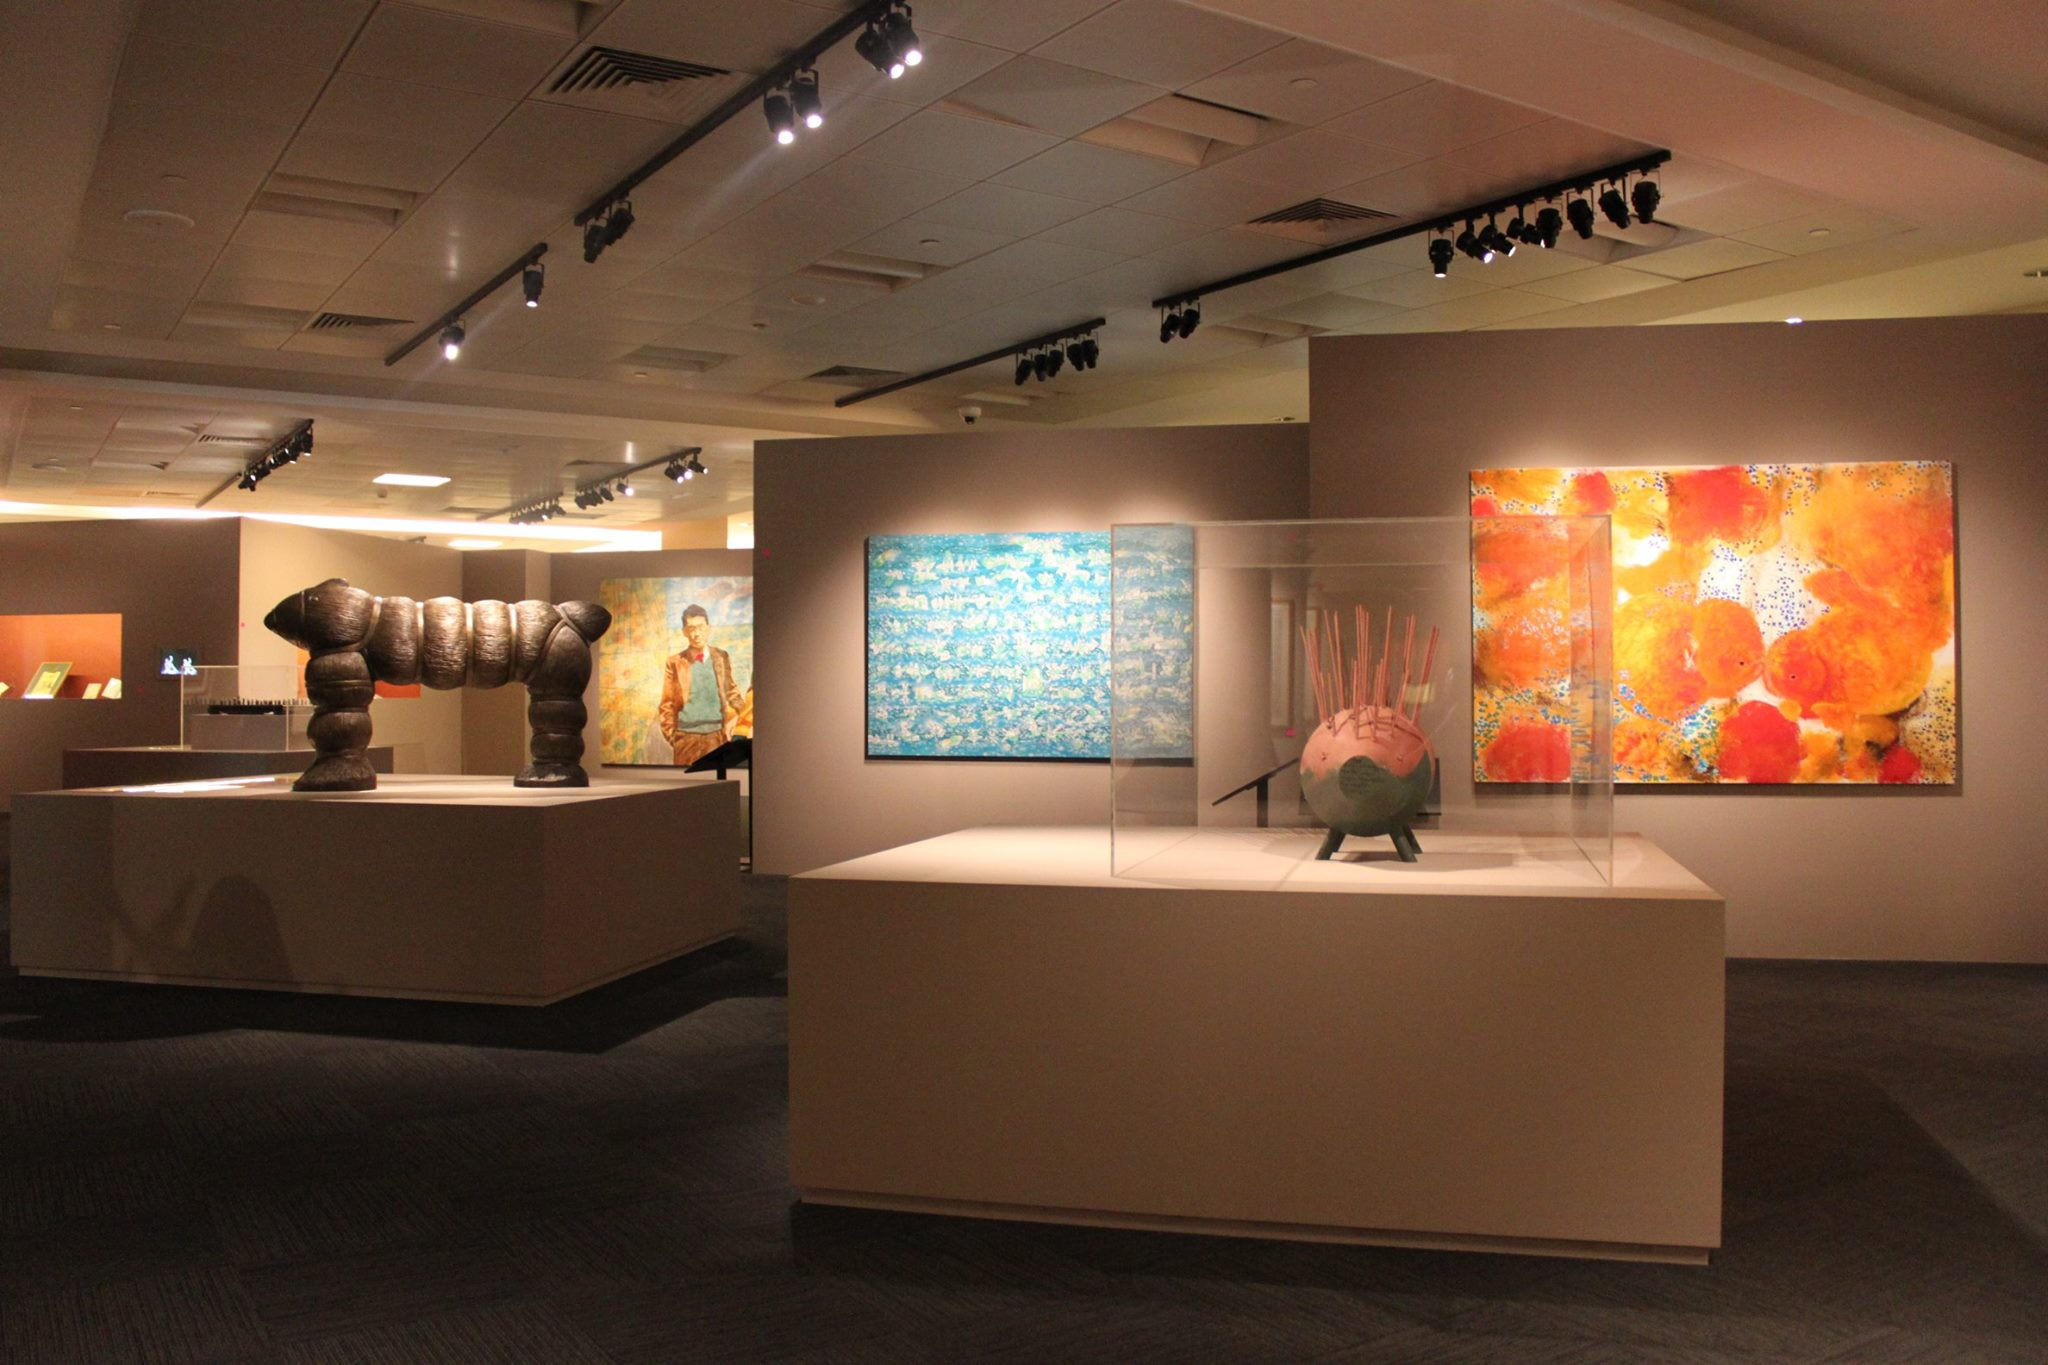 A photo overview of the exhibition. There are sculptures and paintings.